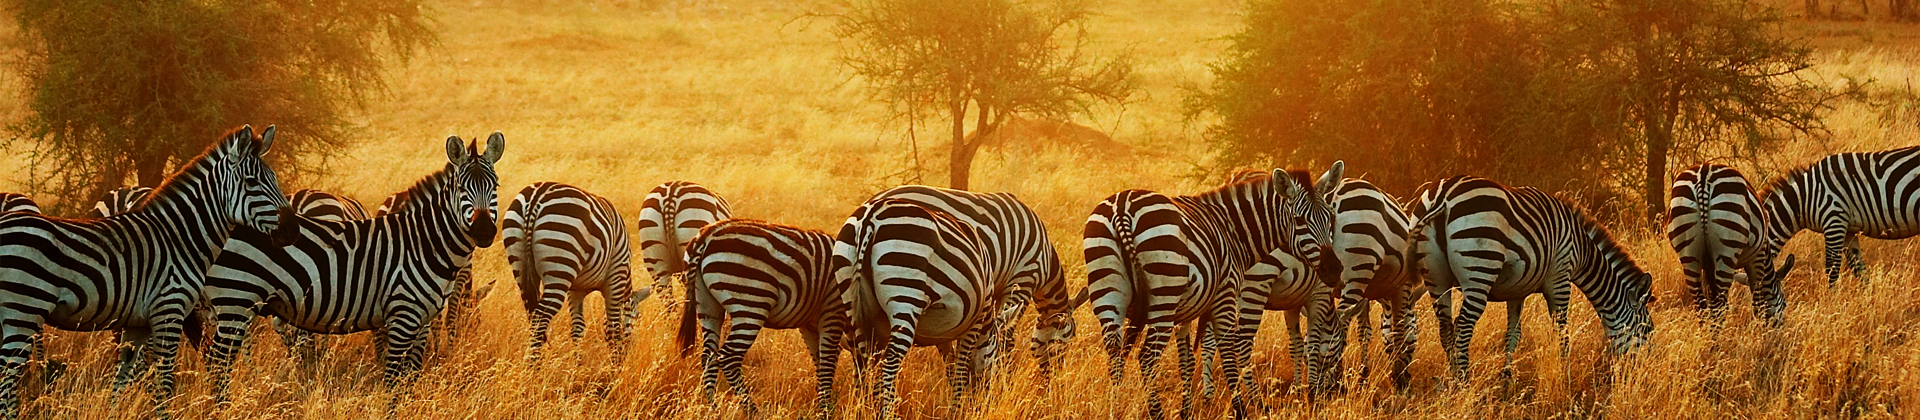 Tanzania Safari Holidays with Prices 2019 / 2020